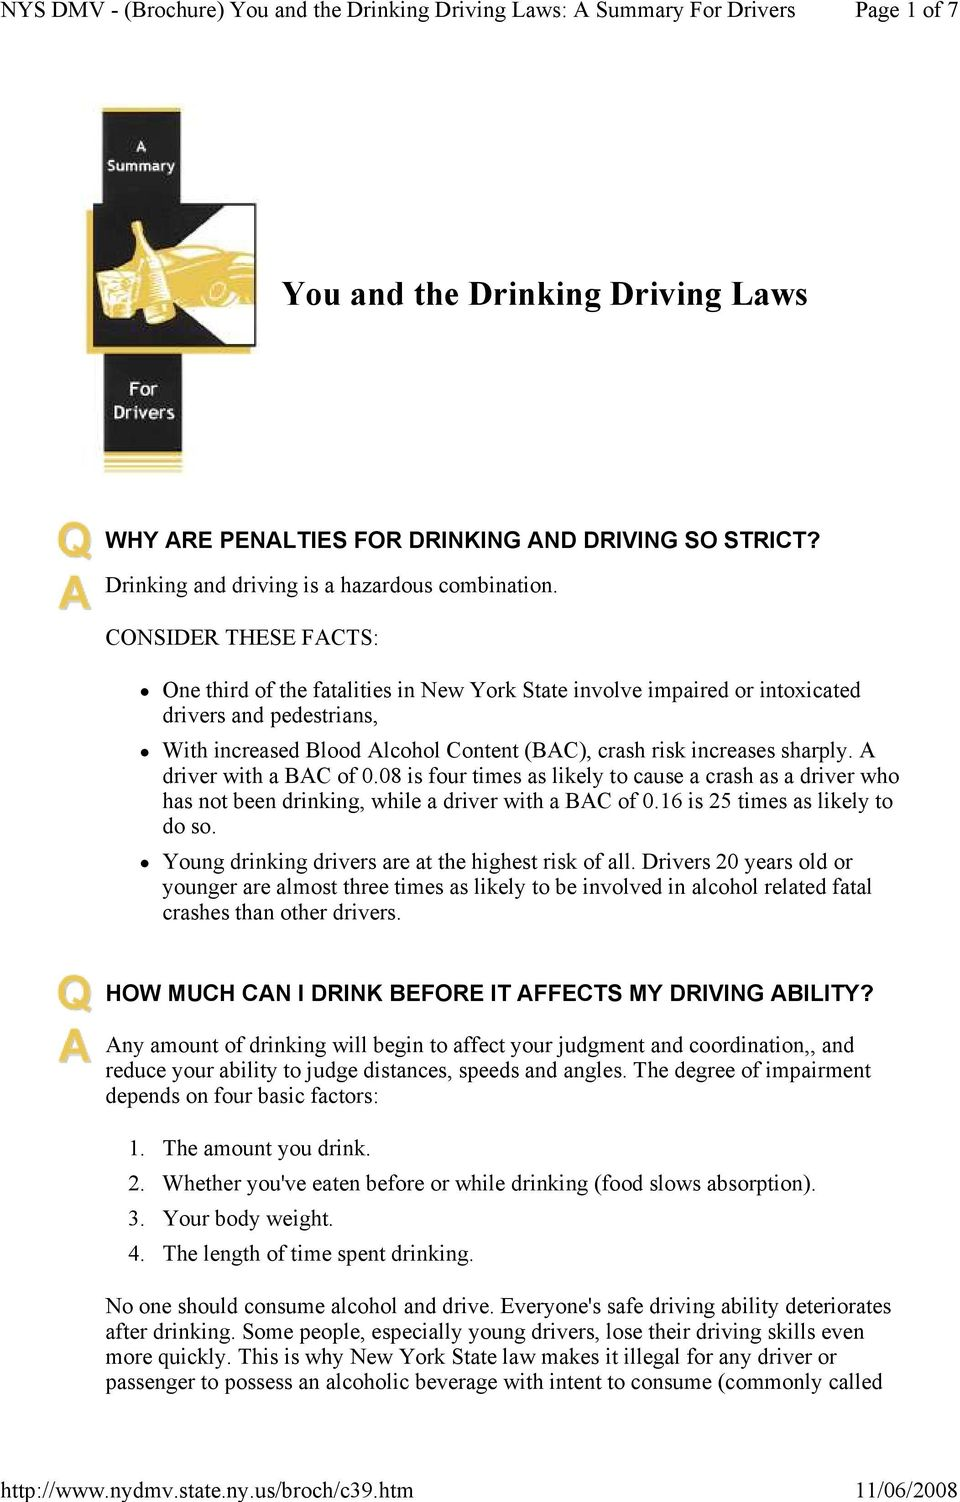 A driver with a BAC of 0.08 is four times as likely to cause a crash as a driver who has not been drinking, while a driver with a BAC of 0.16 is 25 times as likely to do so.